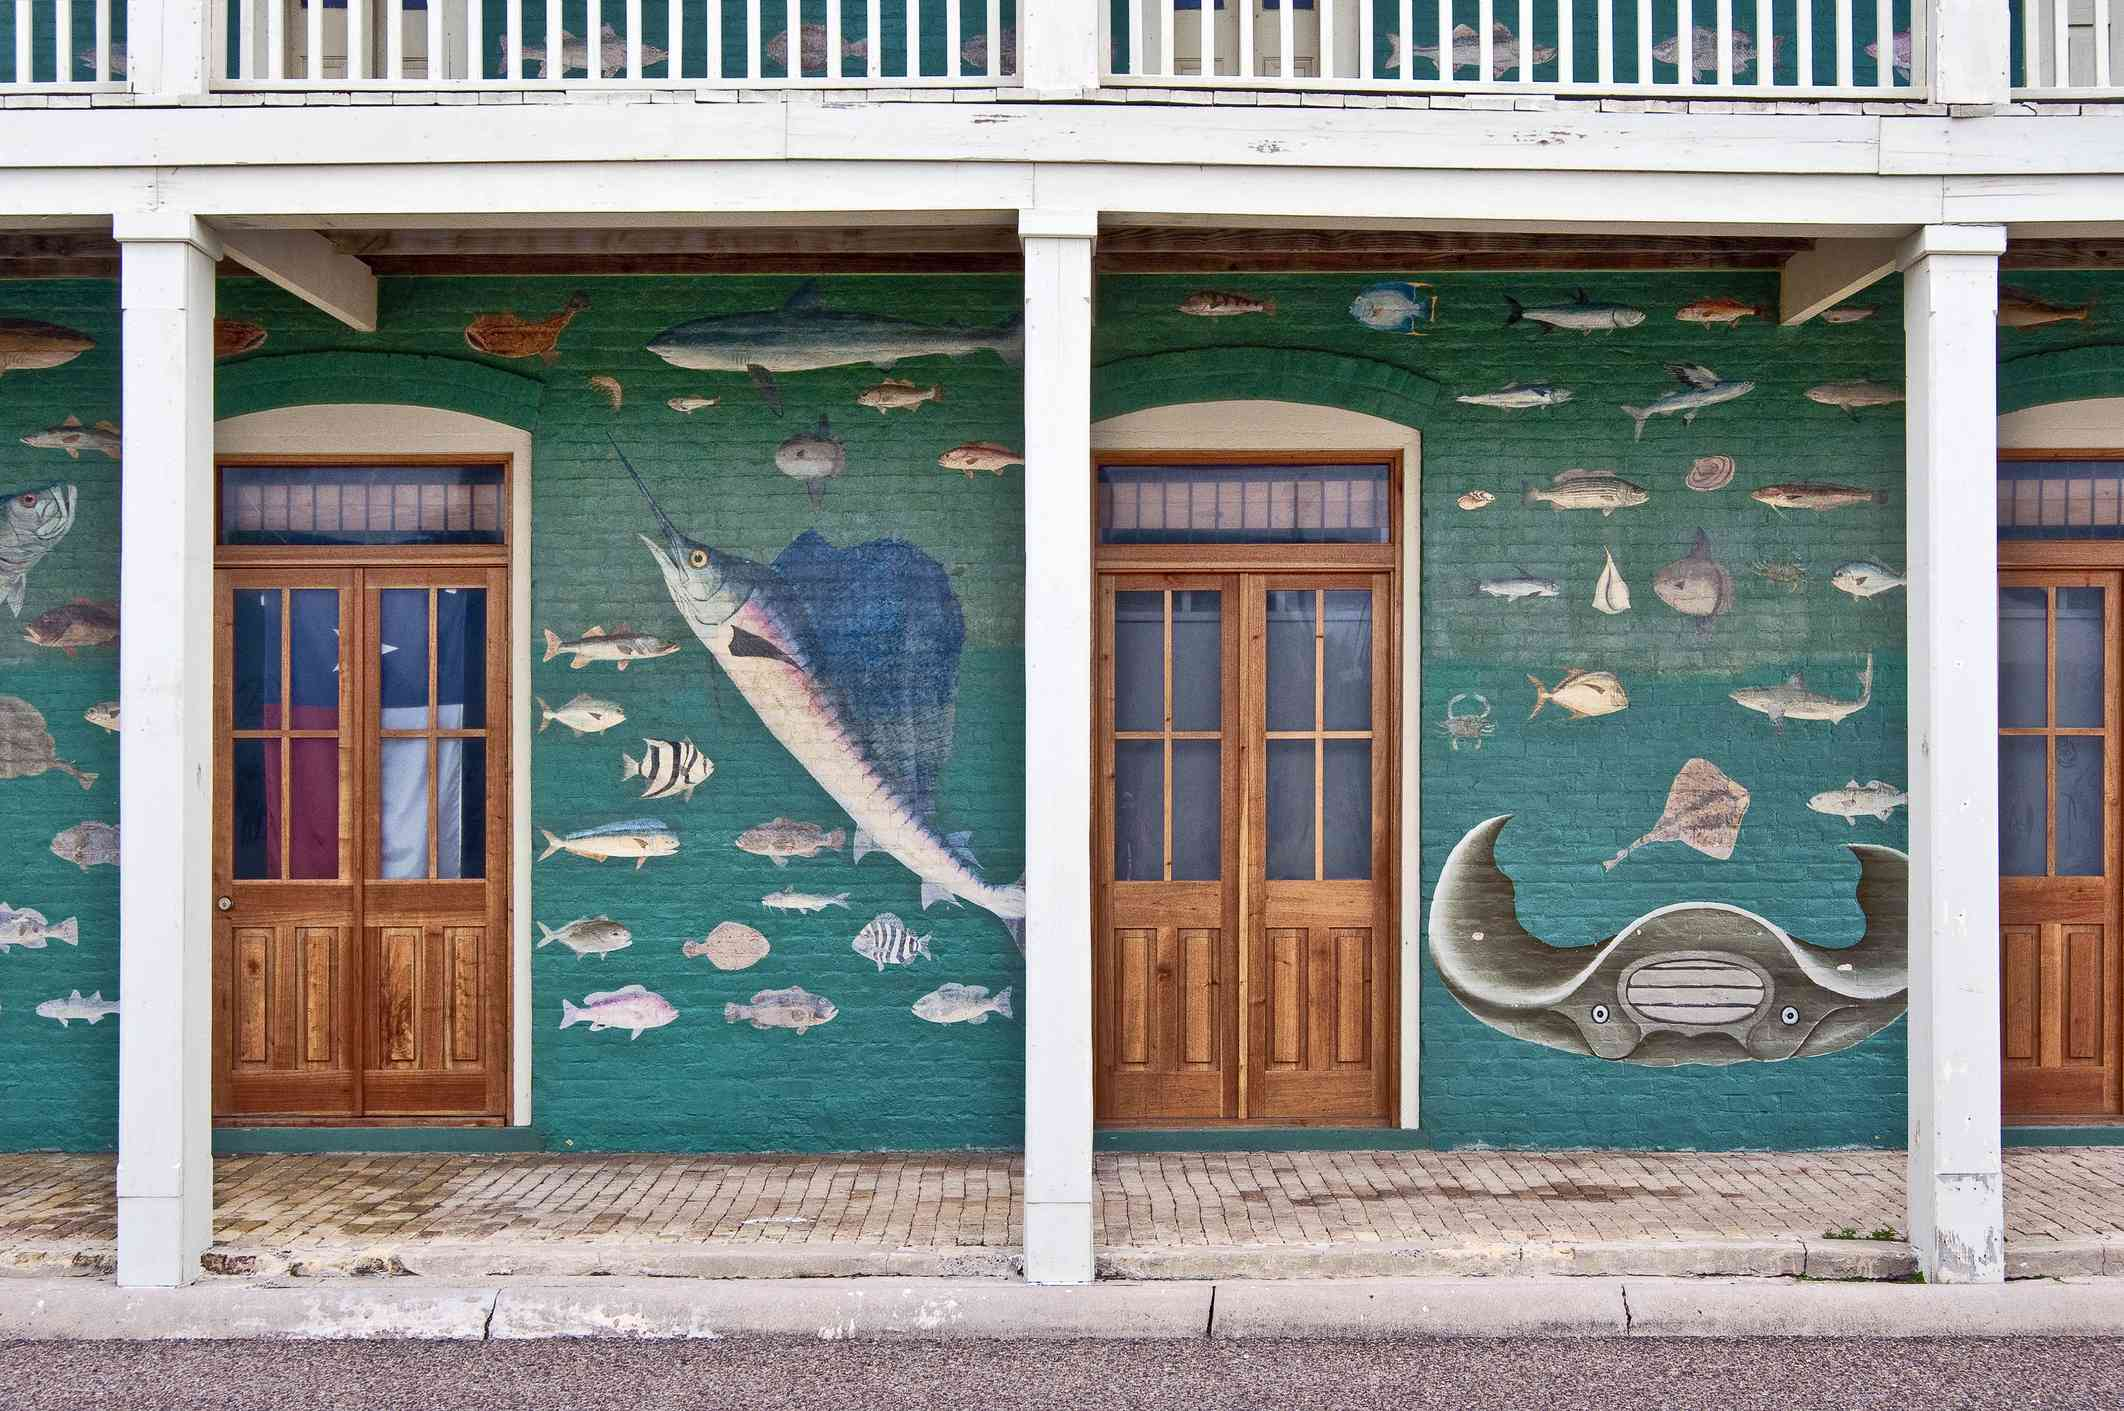 The Key of the Gulf, historic mural in Port Isabel